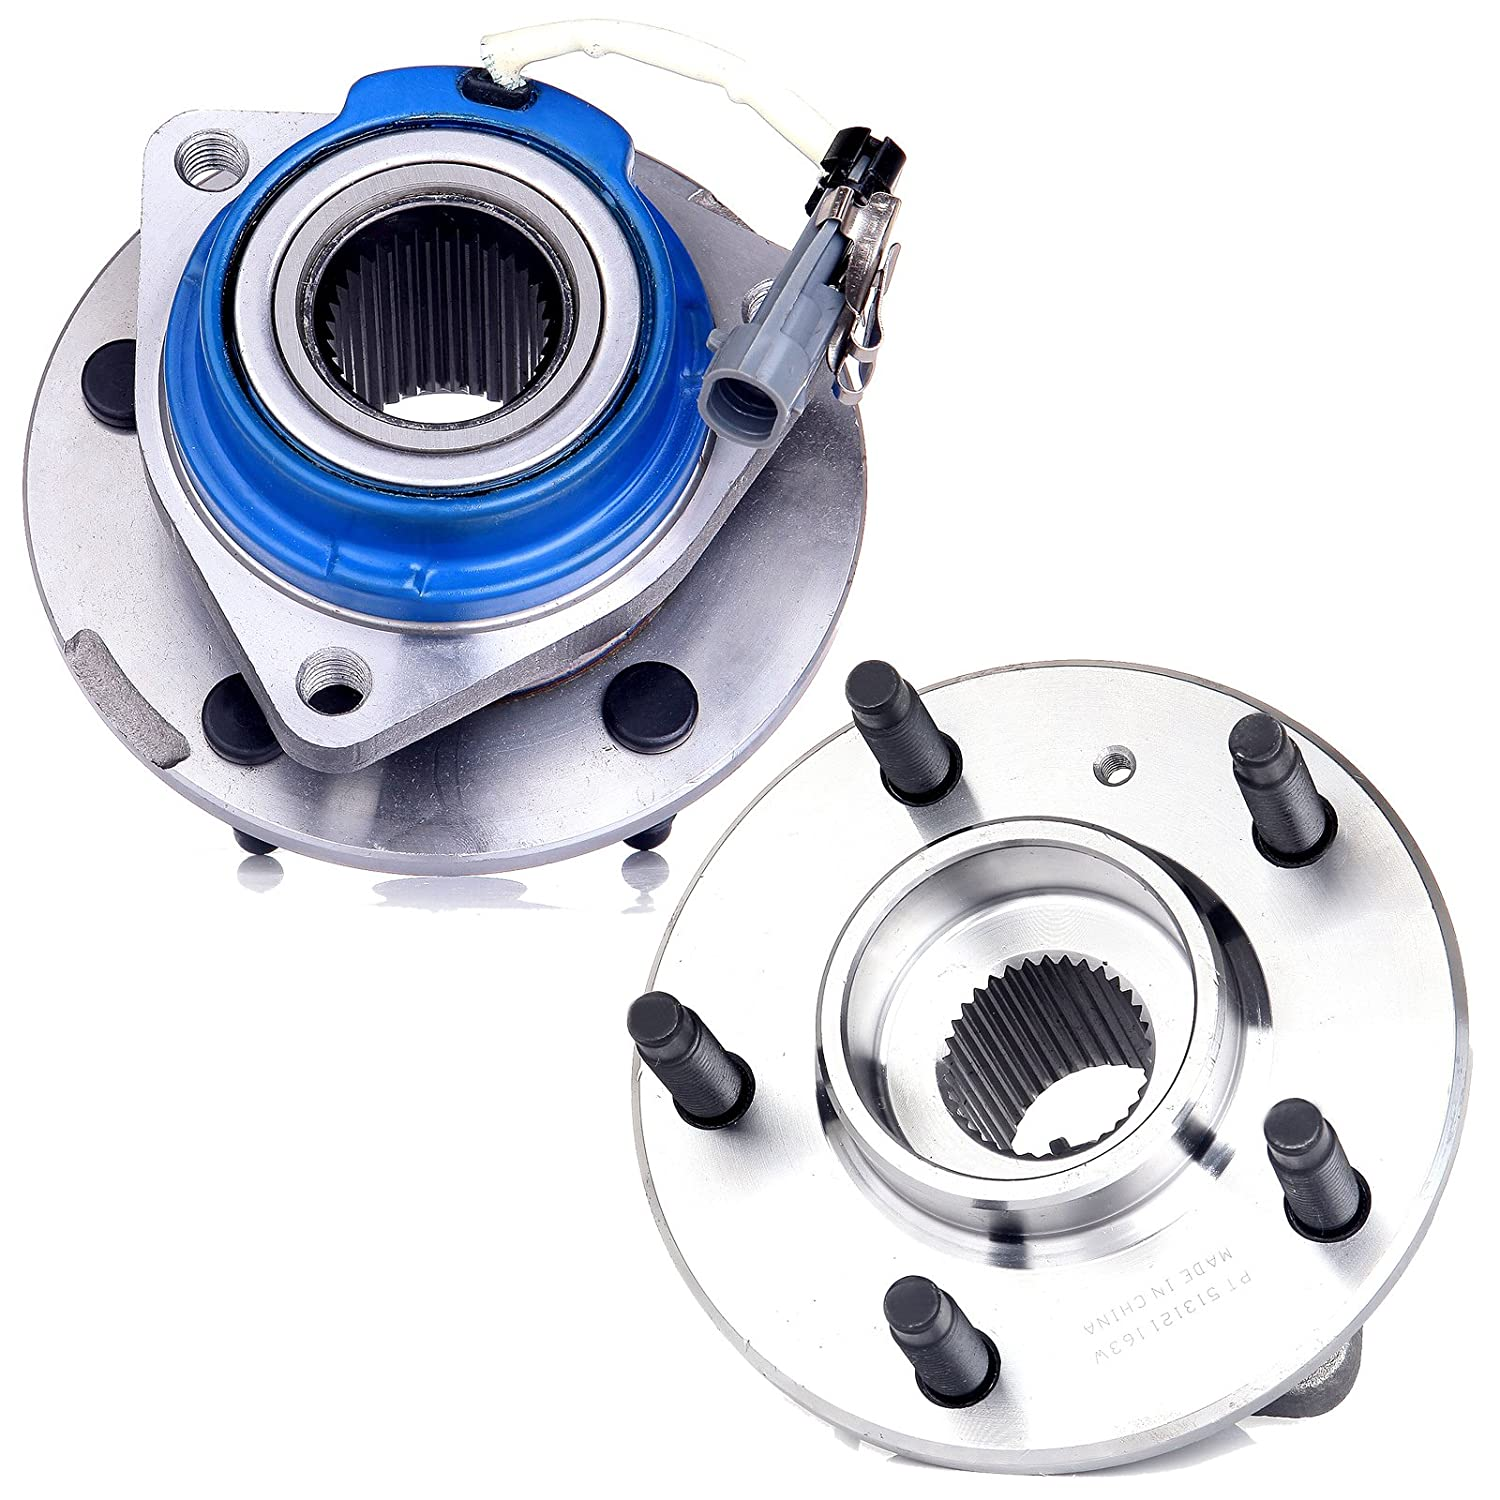 2 New Front Driver Passenger Wheel Hub and Bearing Assembly fit Cadillac DTS Impala Lacrosse Grand Prix W//ABS 5 Lug SCITOO Both